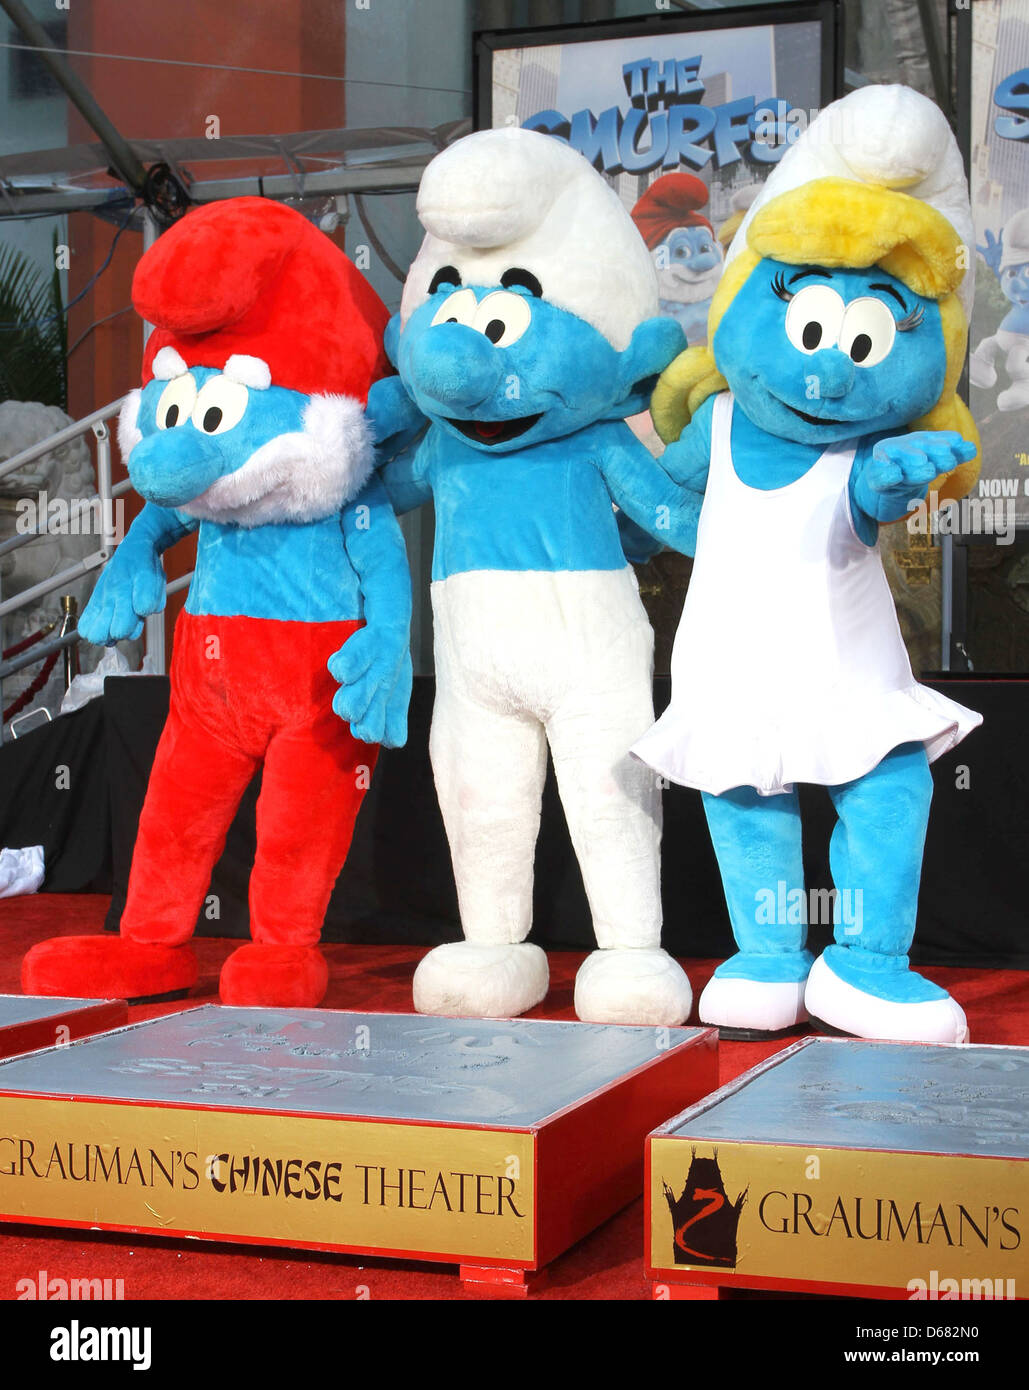 Papa Smurf Stock Photos & Papa Smurf Stock Images - Alamy